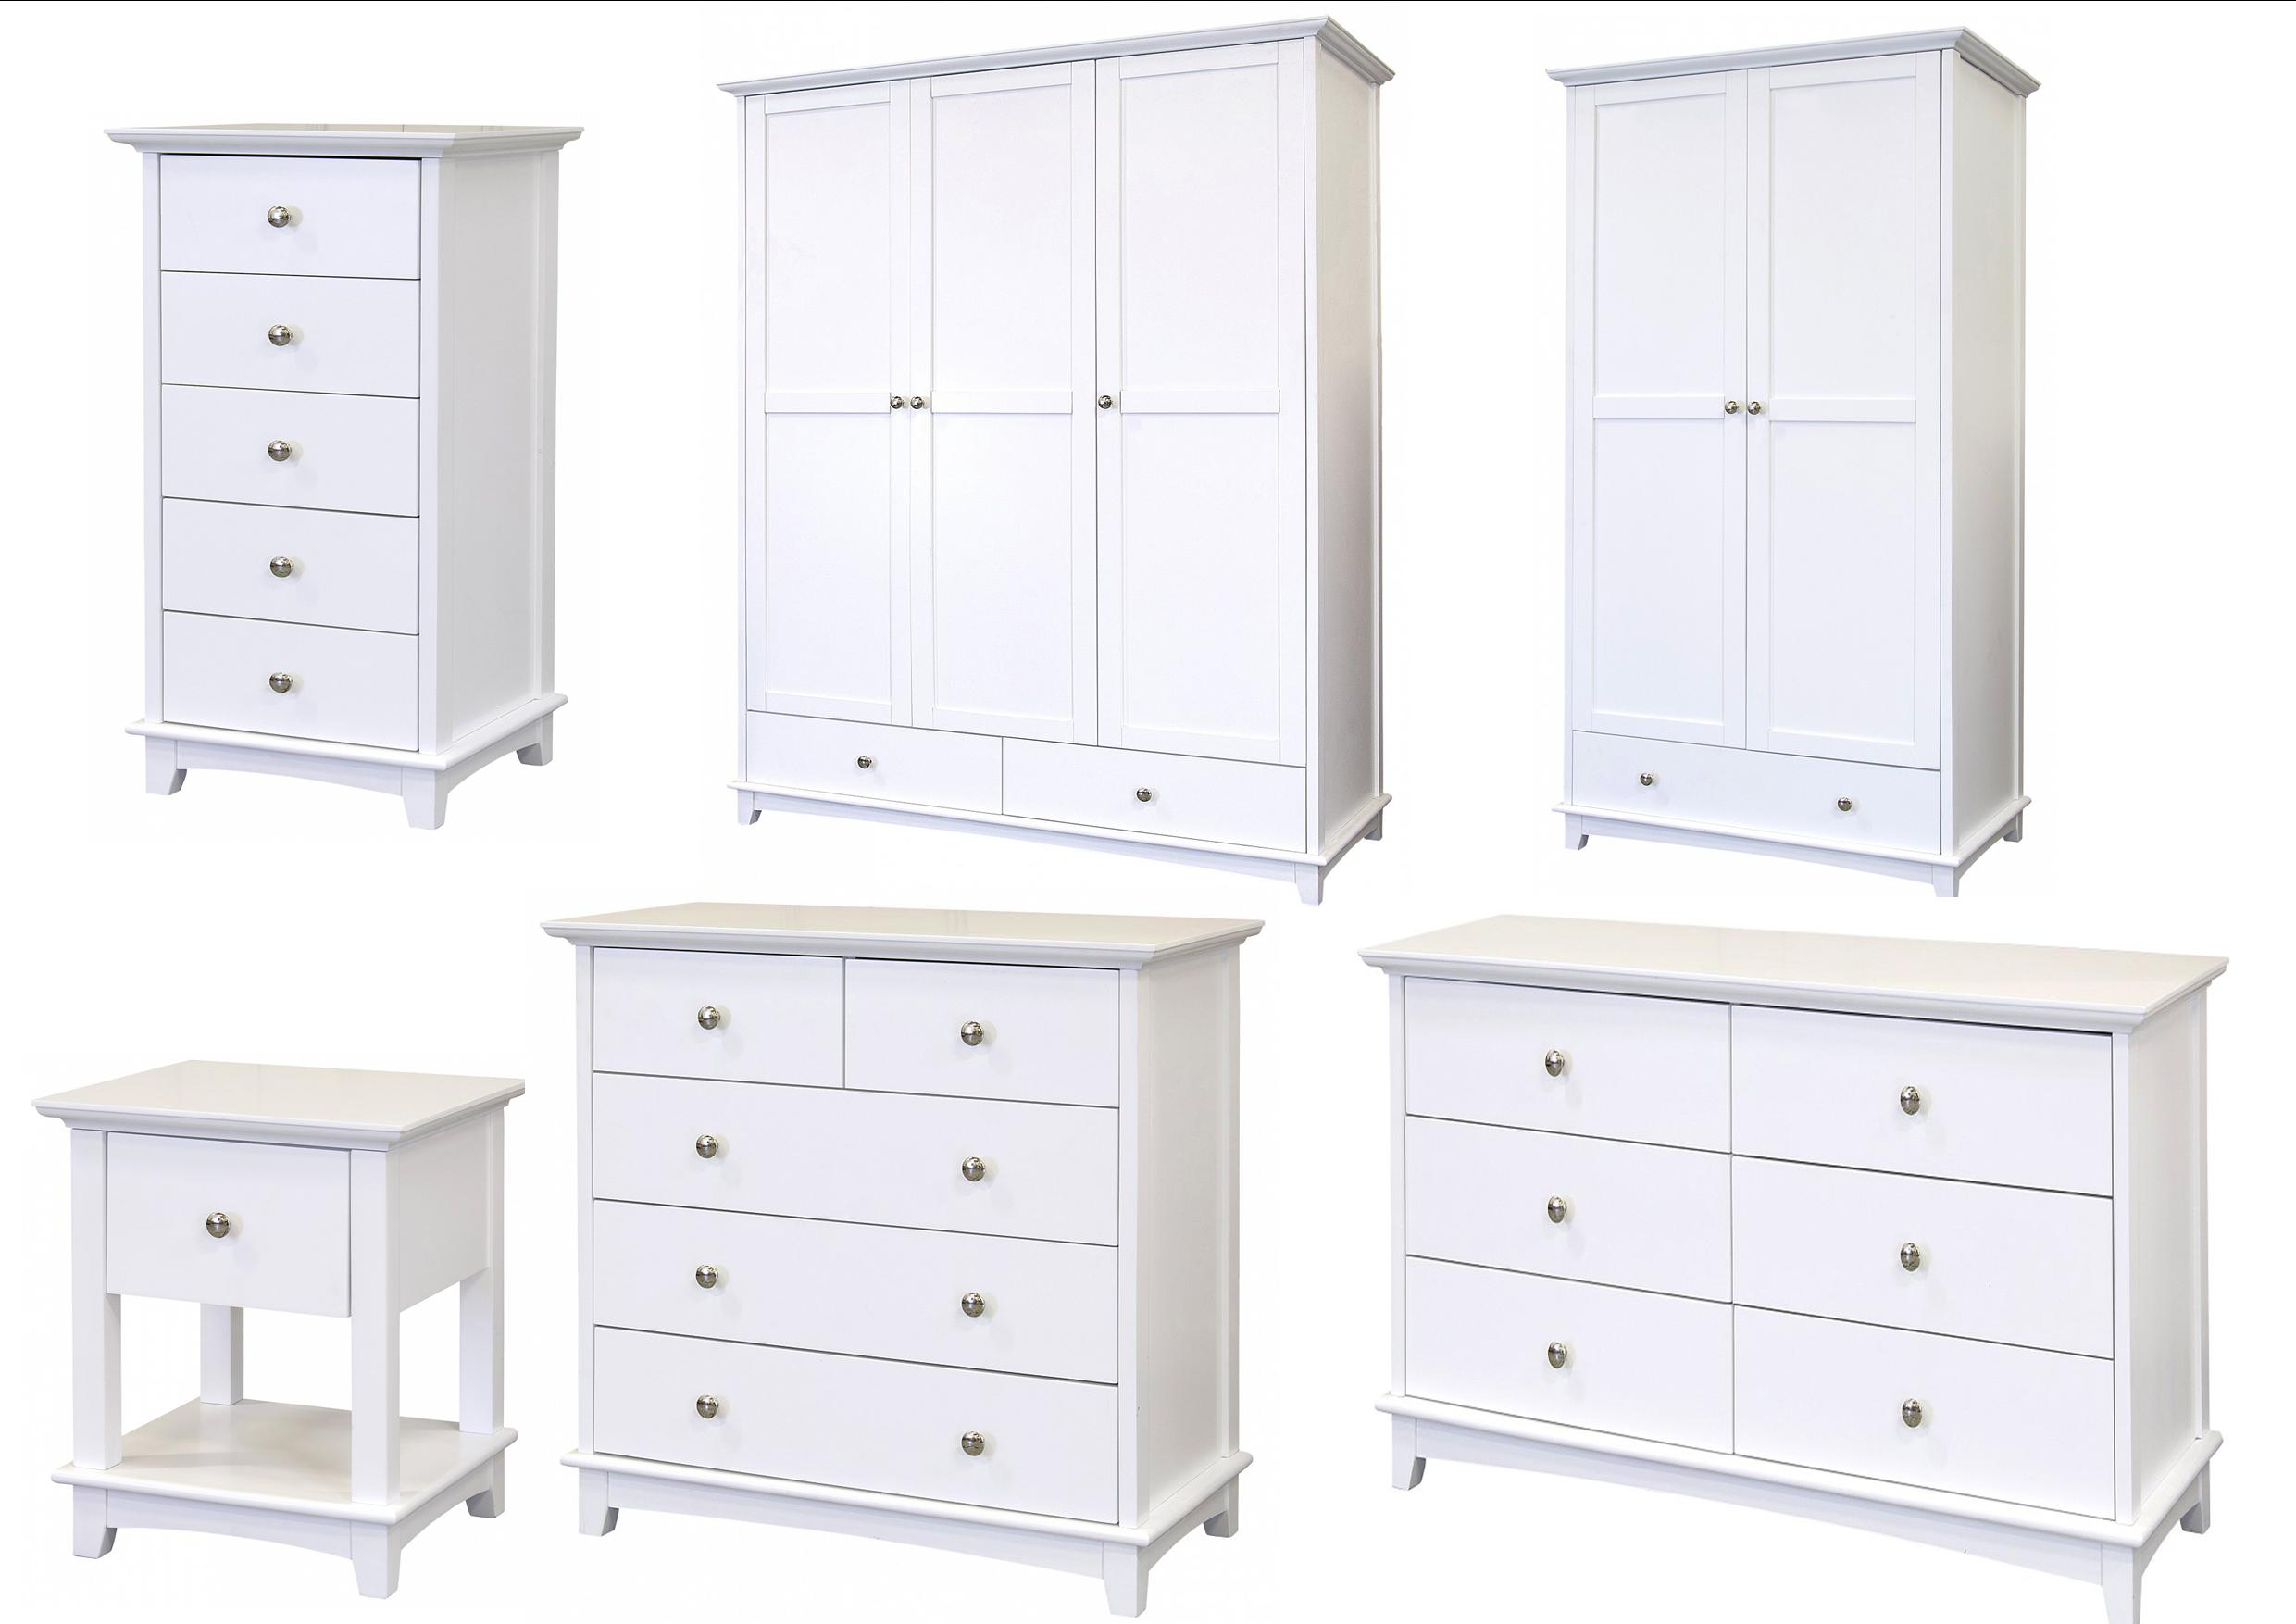 Toulouse White Painted Bedroom Furniture Bedside Chest Of - Toulouse bedroom furniture white